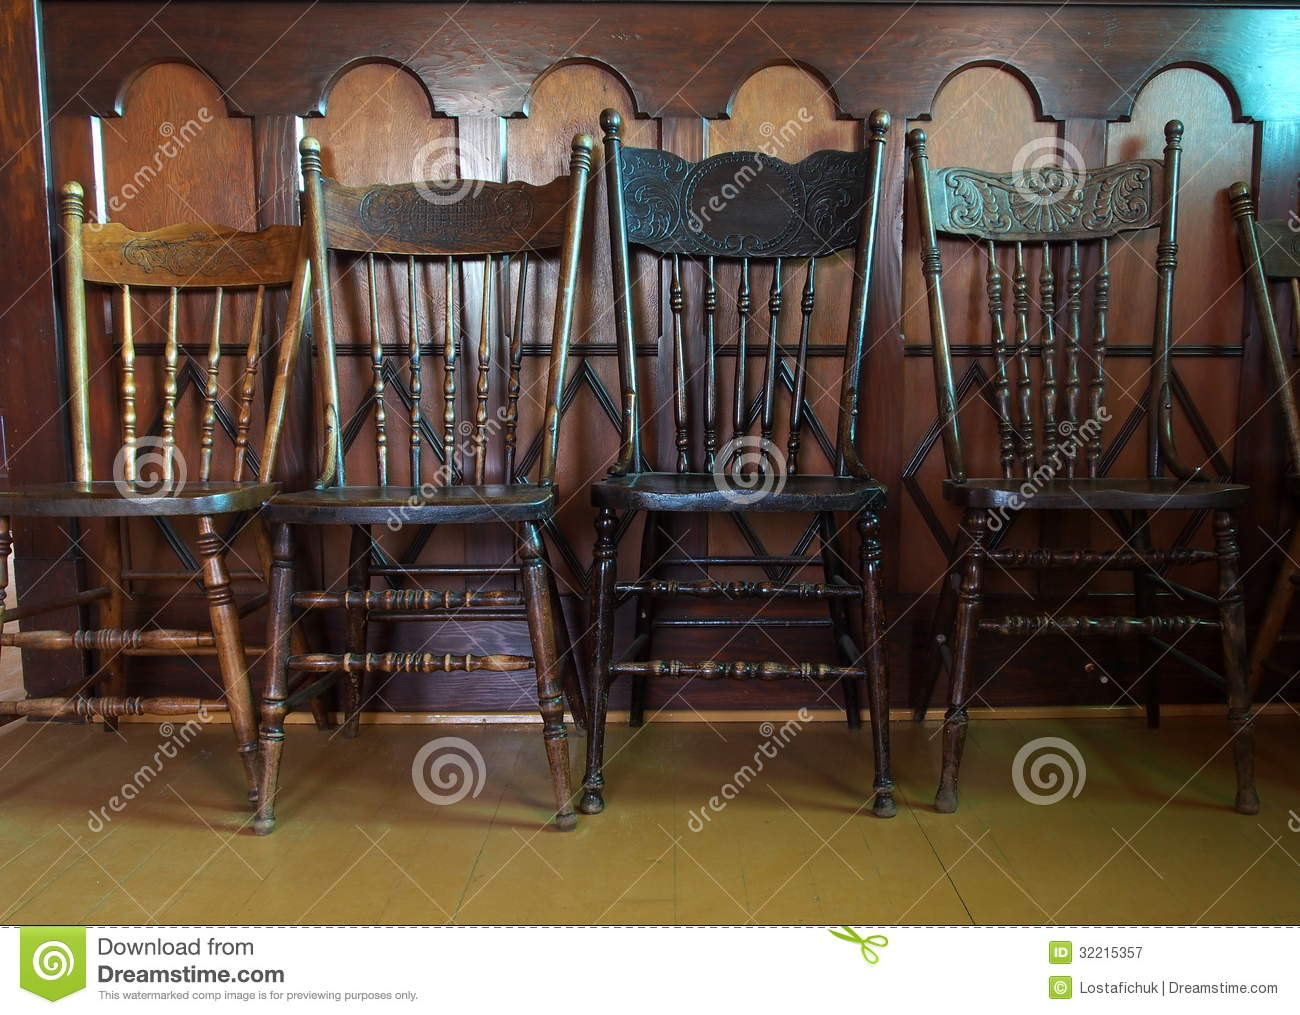 Antique Pressback Chairs - Antique Pressback Chairs Stock Image. Image Of  Spindle - 32215357 - Antique Pressback Chairs Antique Furniture